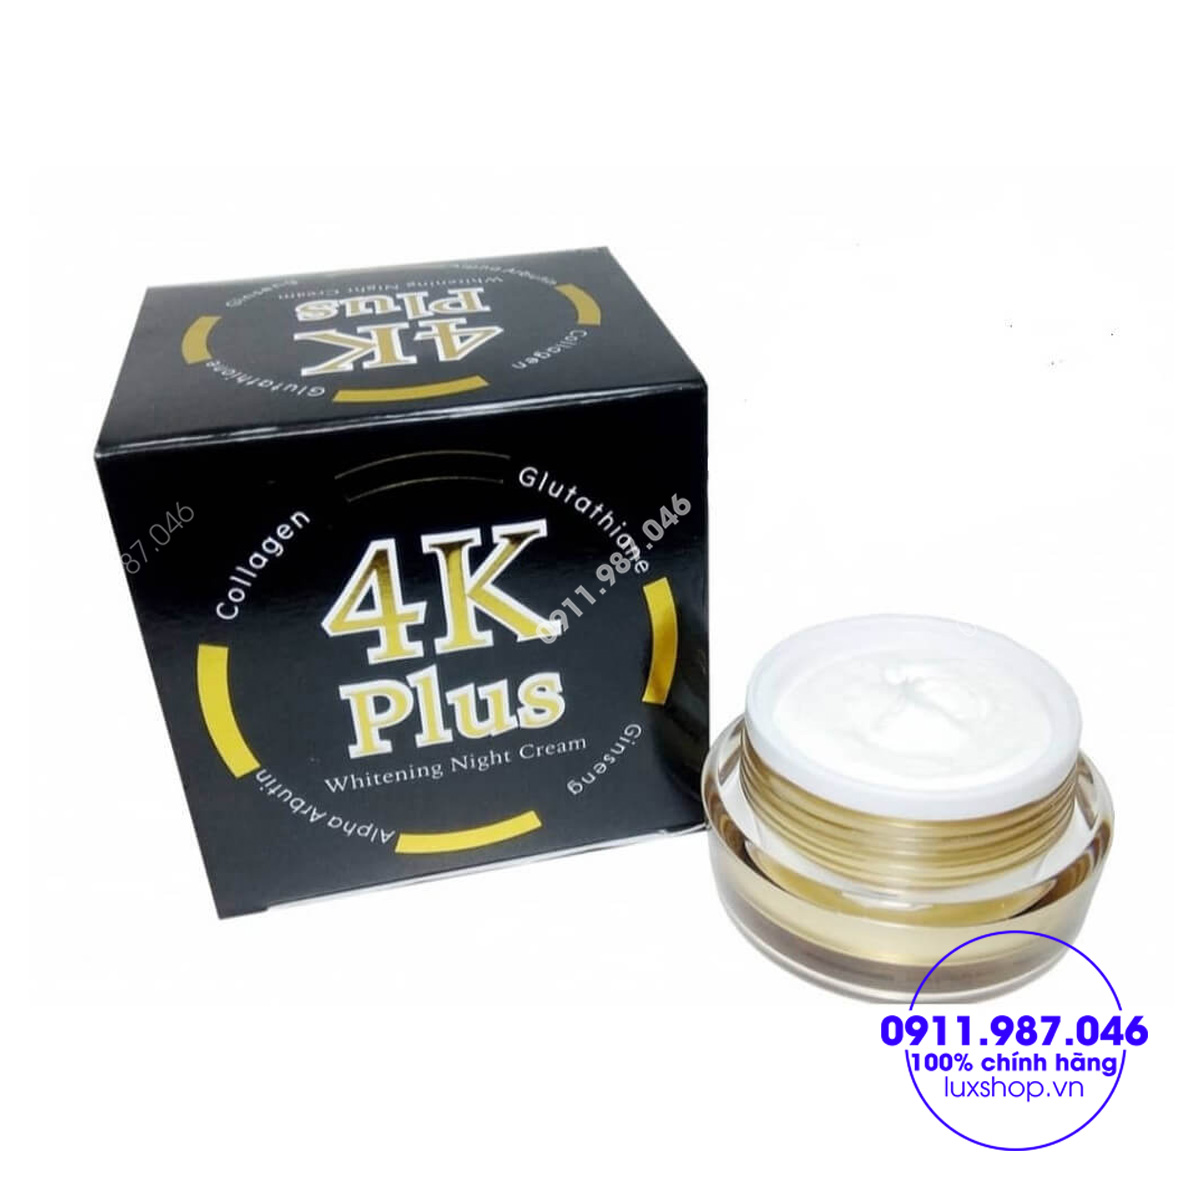 kem-duong-trang-da-4k-plus-whitening-night-cream-chinh-hang-thai-lan-l31179